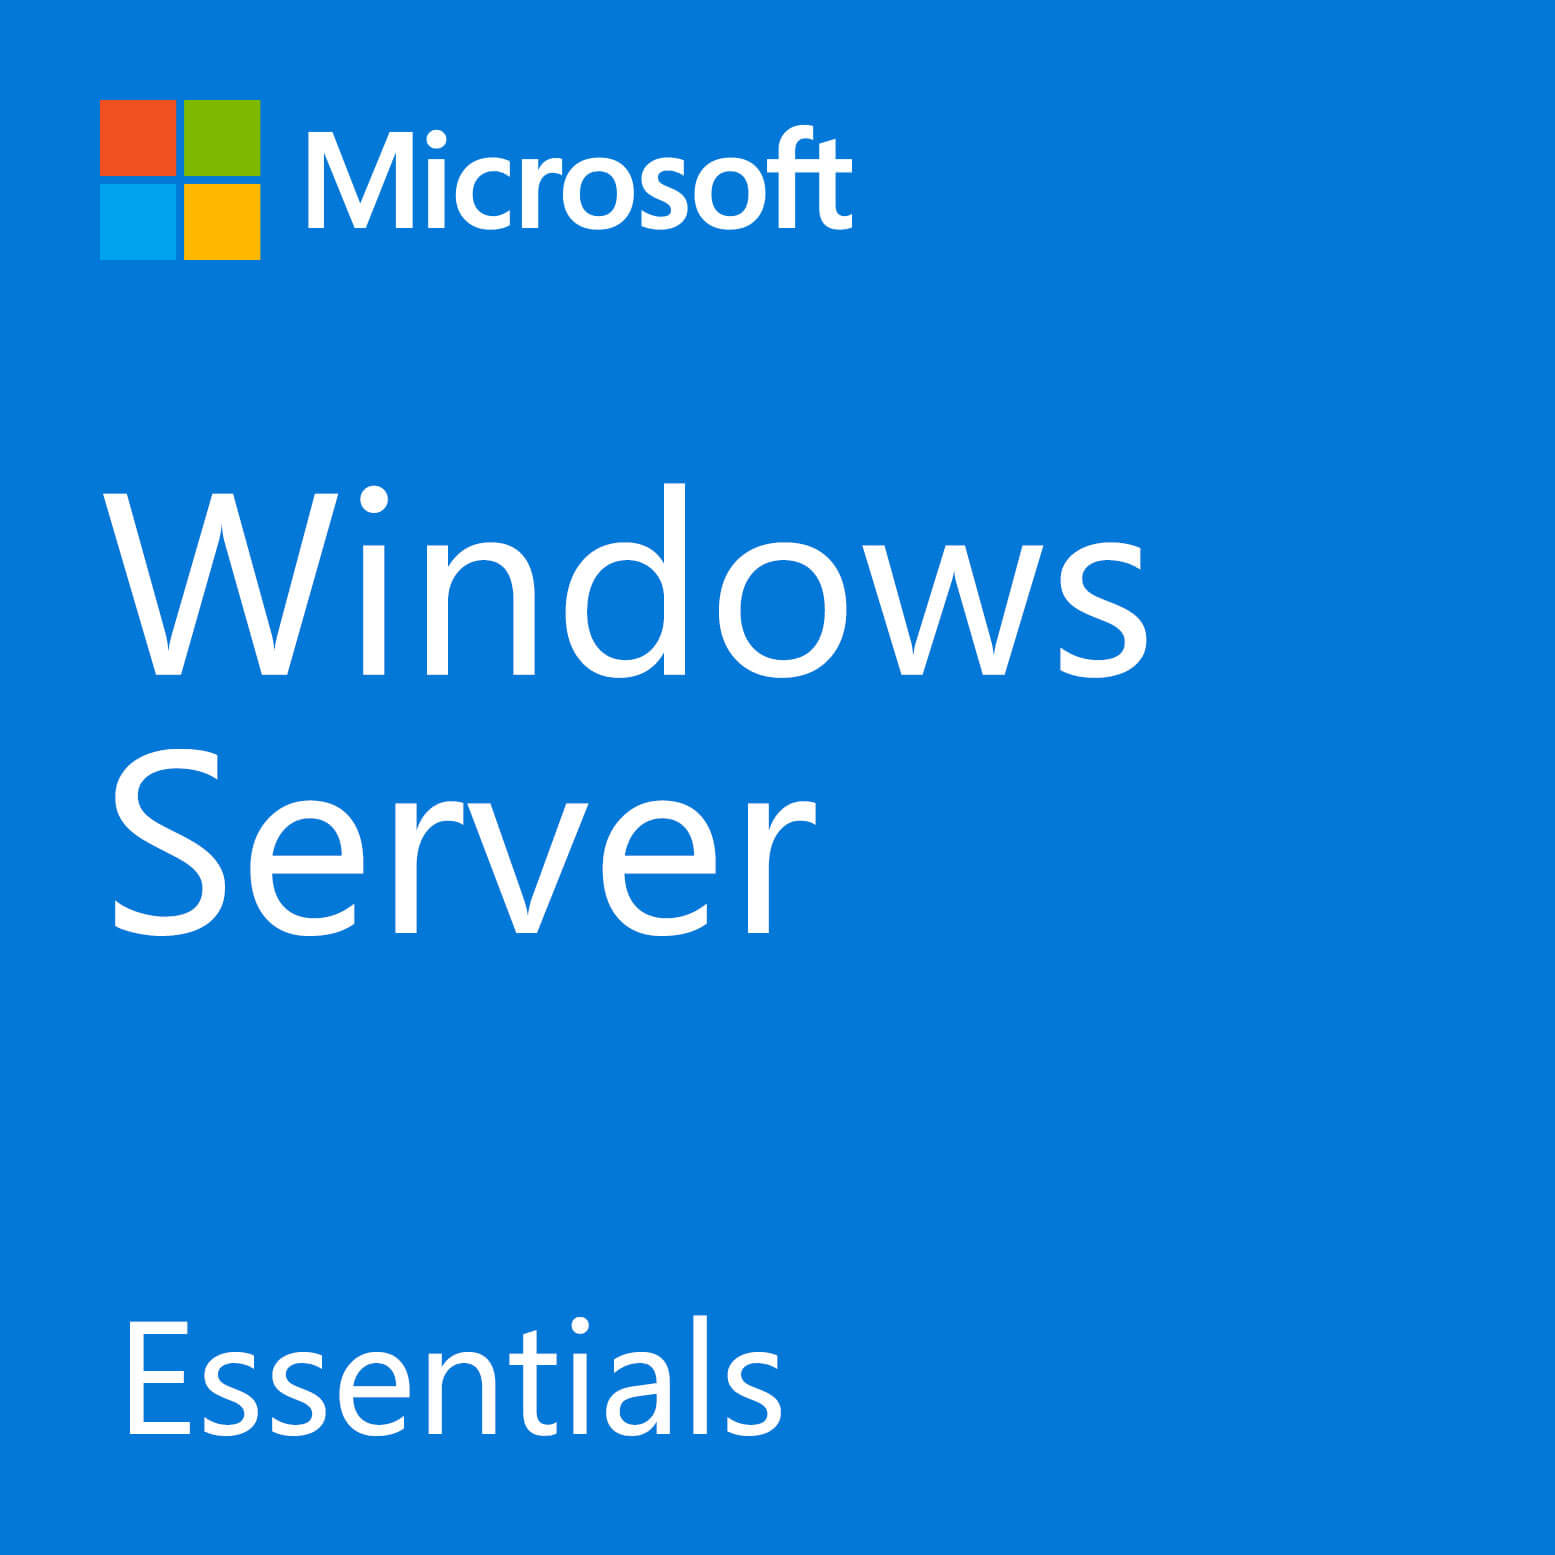 Windows Server 2019 Essentials - RJO Ventures, Inc.